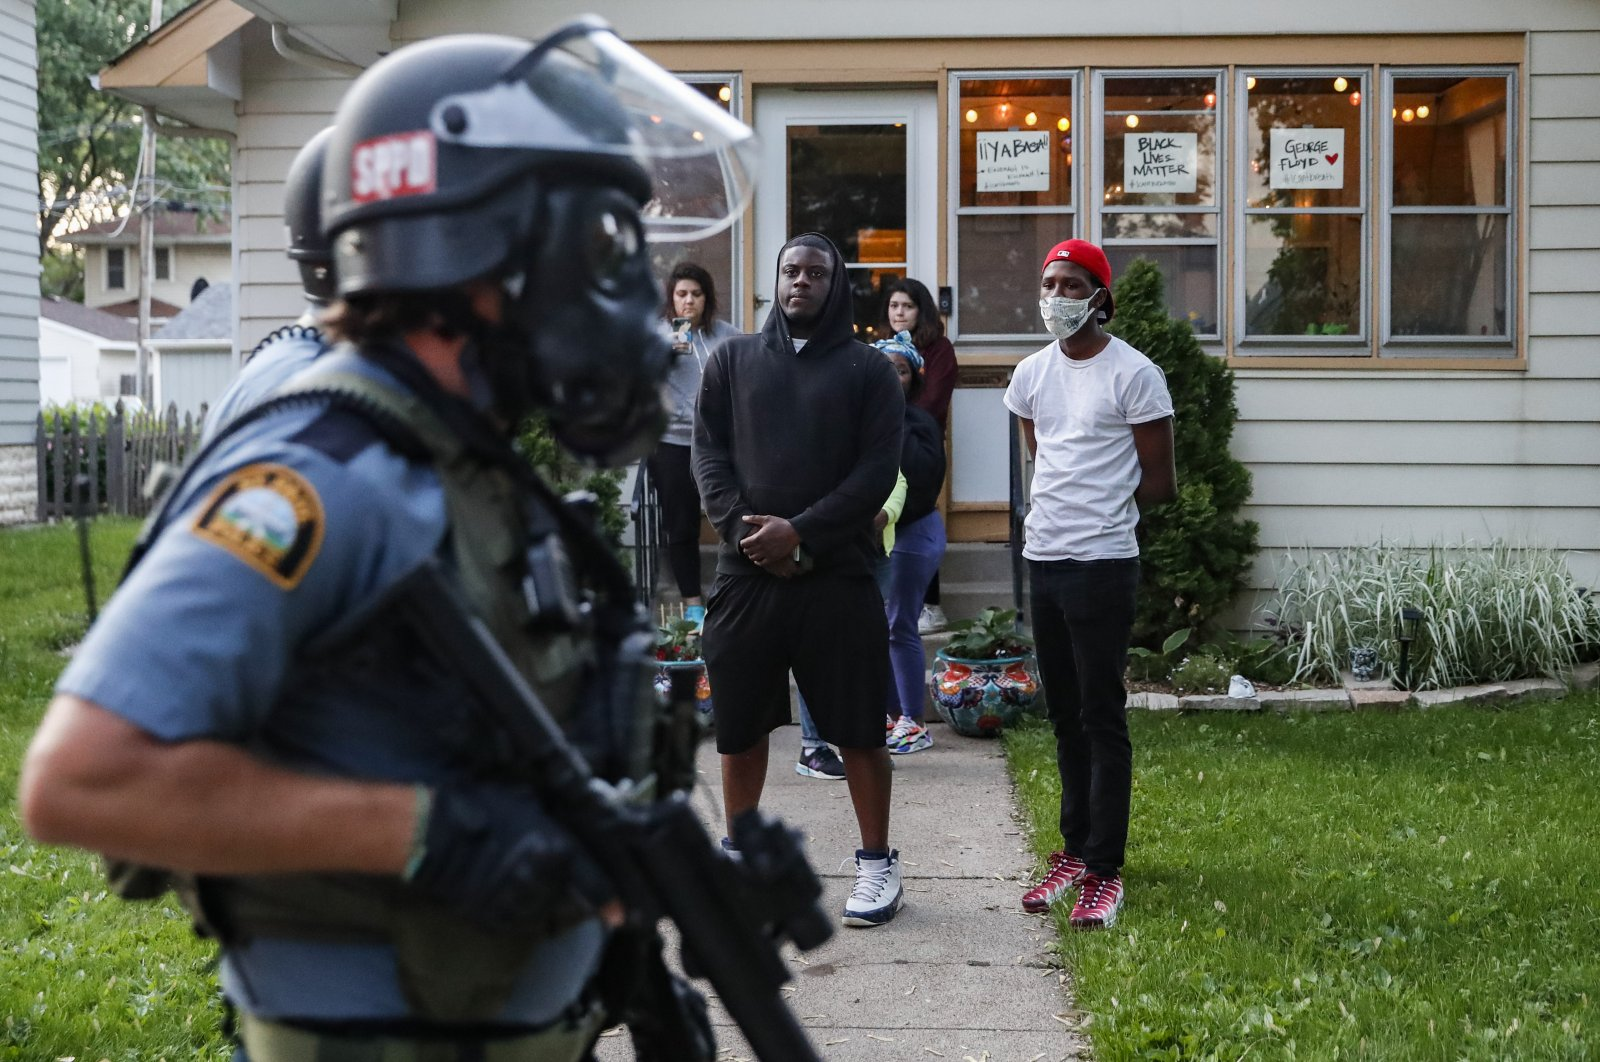 Protestors watch as police in riot gear walk down a residential street, Thursday, May 28, 2020, in St. Paul, Minn. (AP Photo)